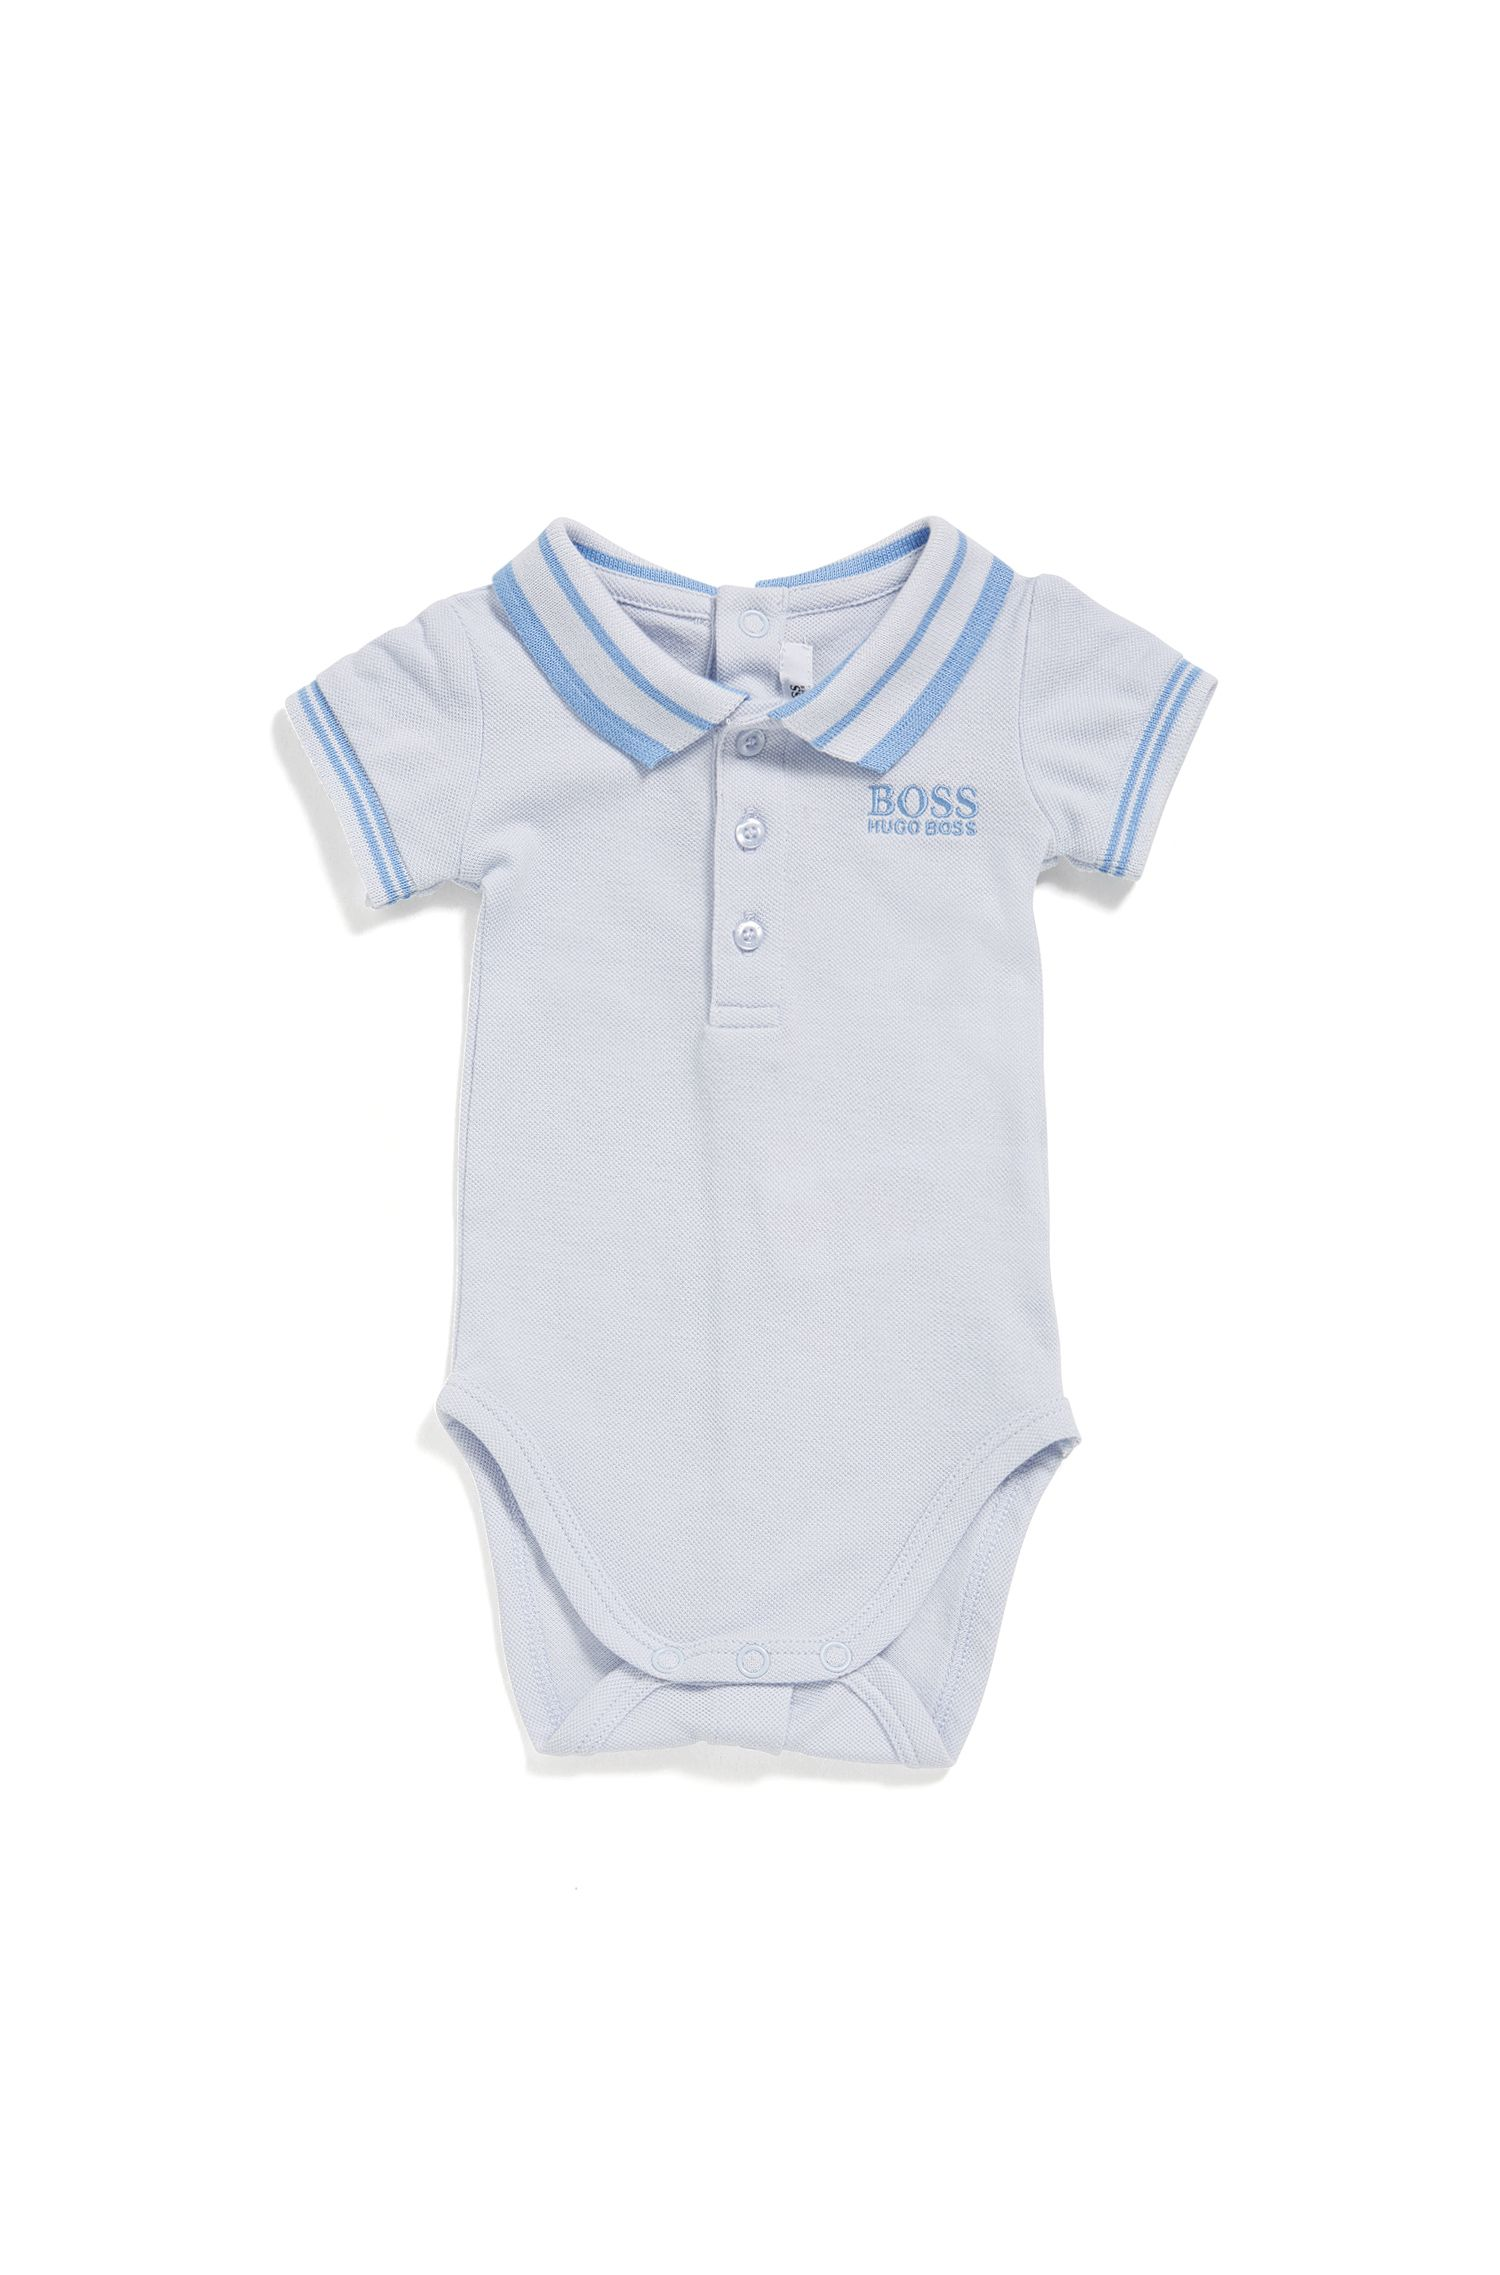 Baby-Body aus Stretch-Baumwolle mit Polo-Kragen: 'J97112'